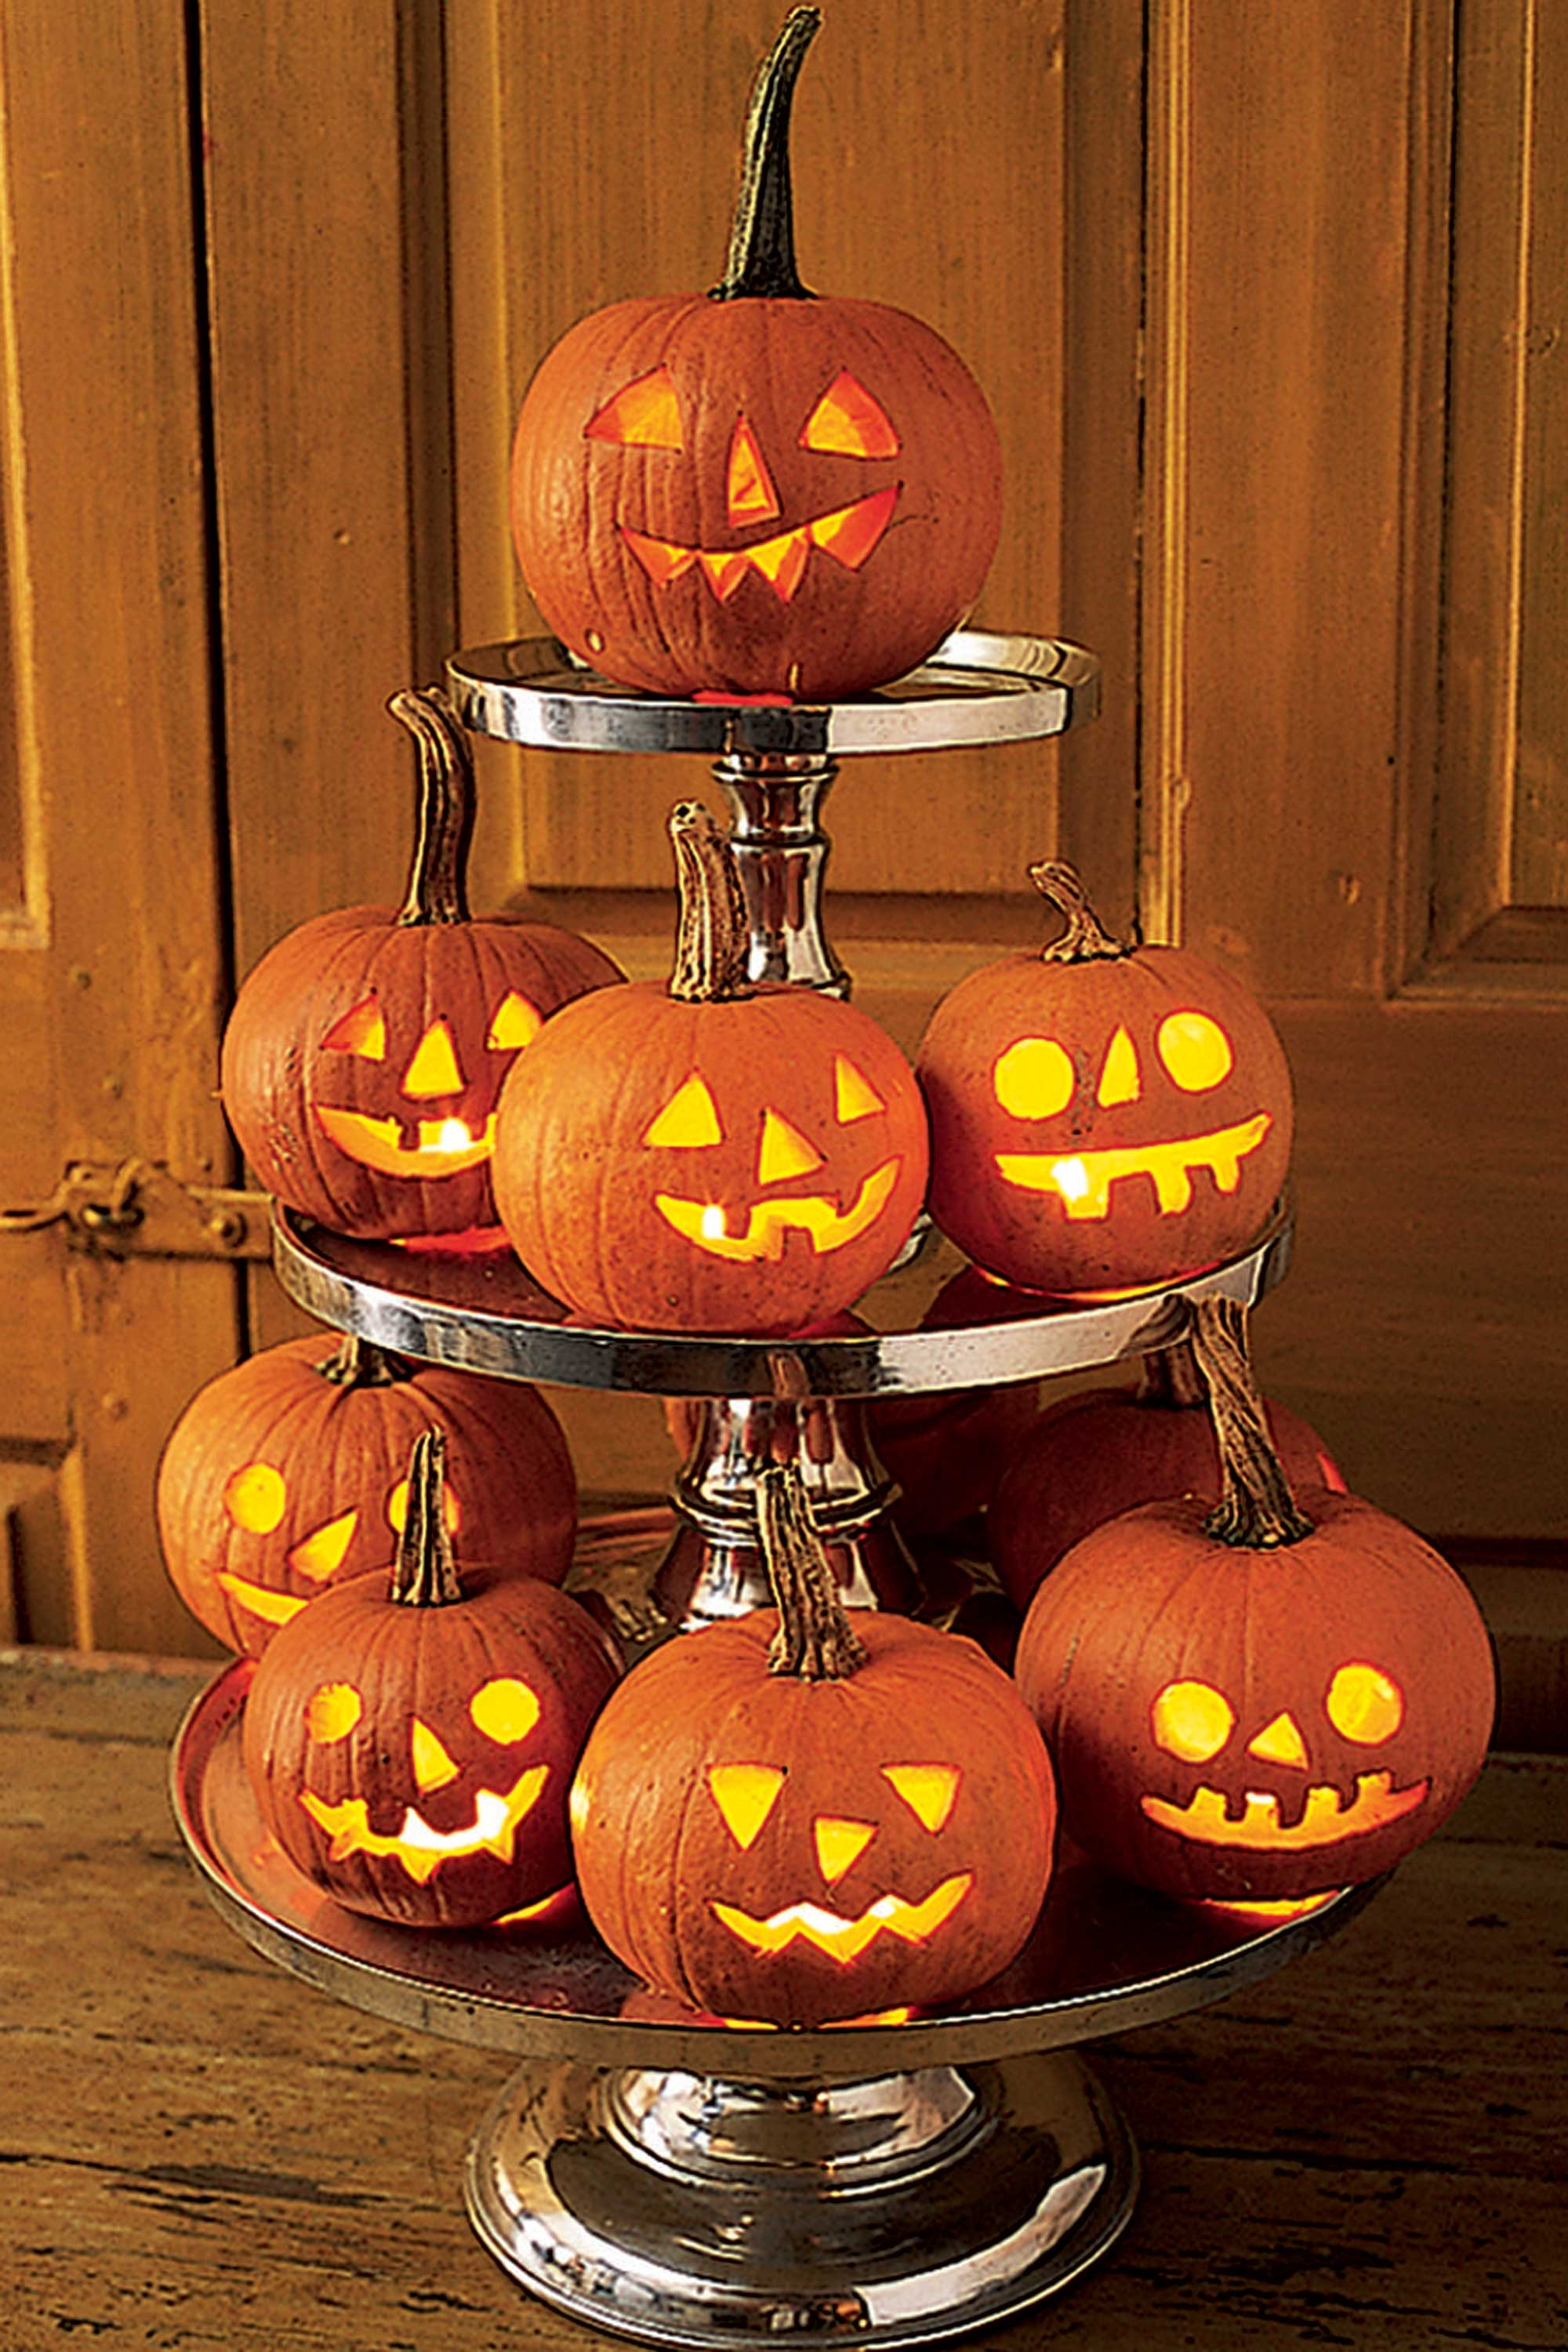 88 cool pumpkin decorating ideas easy halloween pumpkin decorations and crafts 2017 - Pumpkin Halloween Ideas